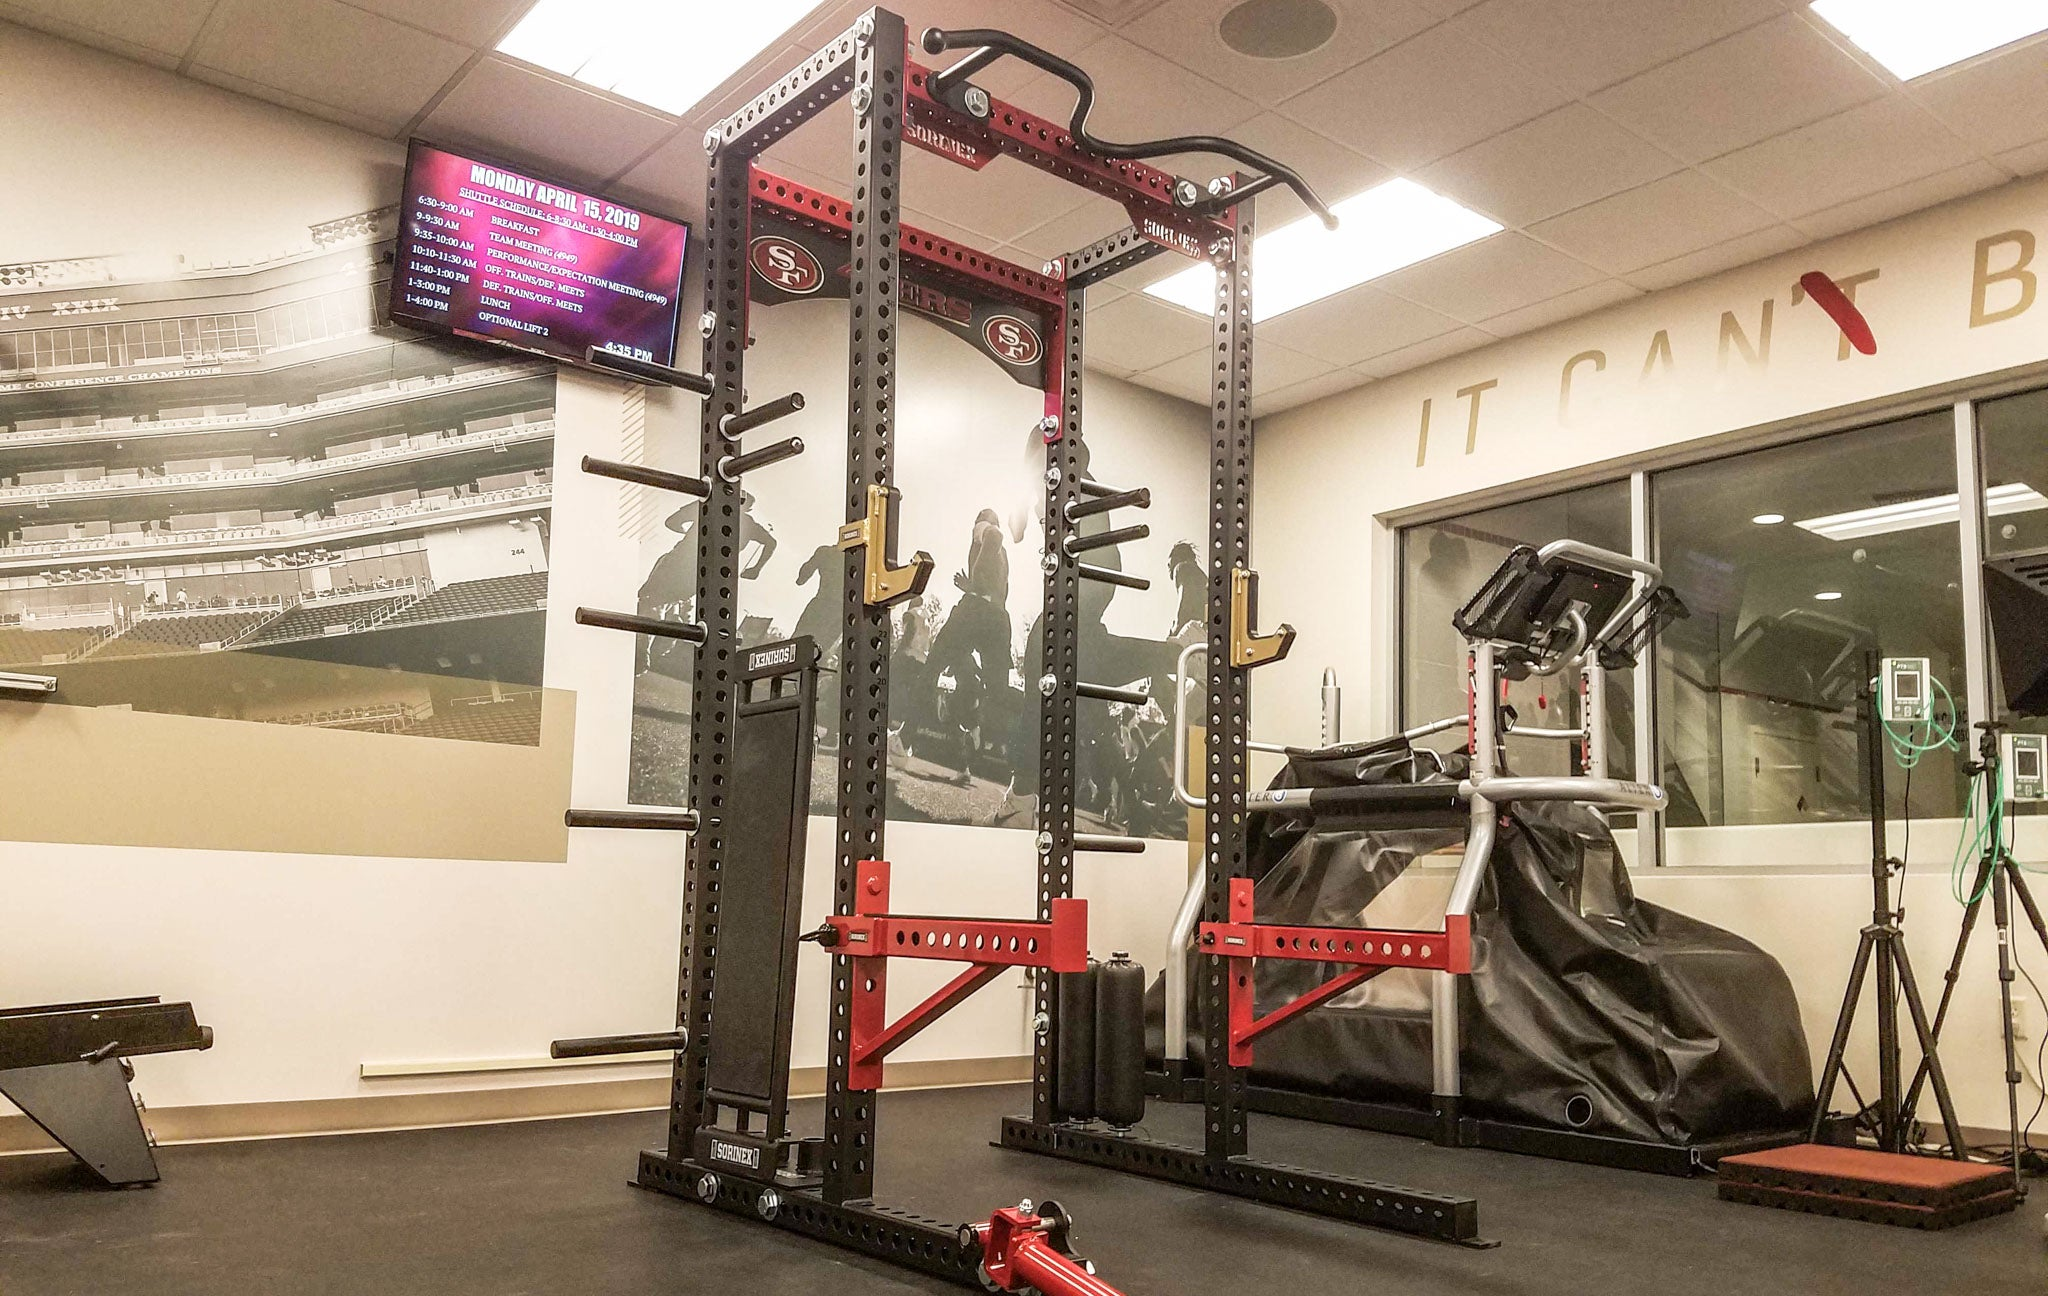 49ers strength and conditioning